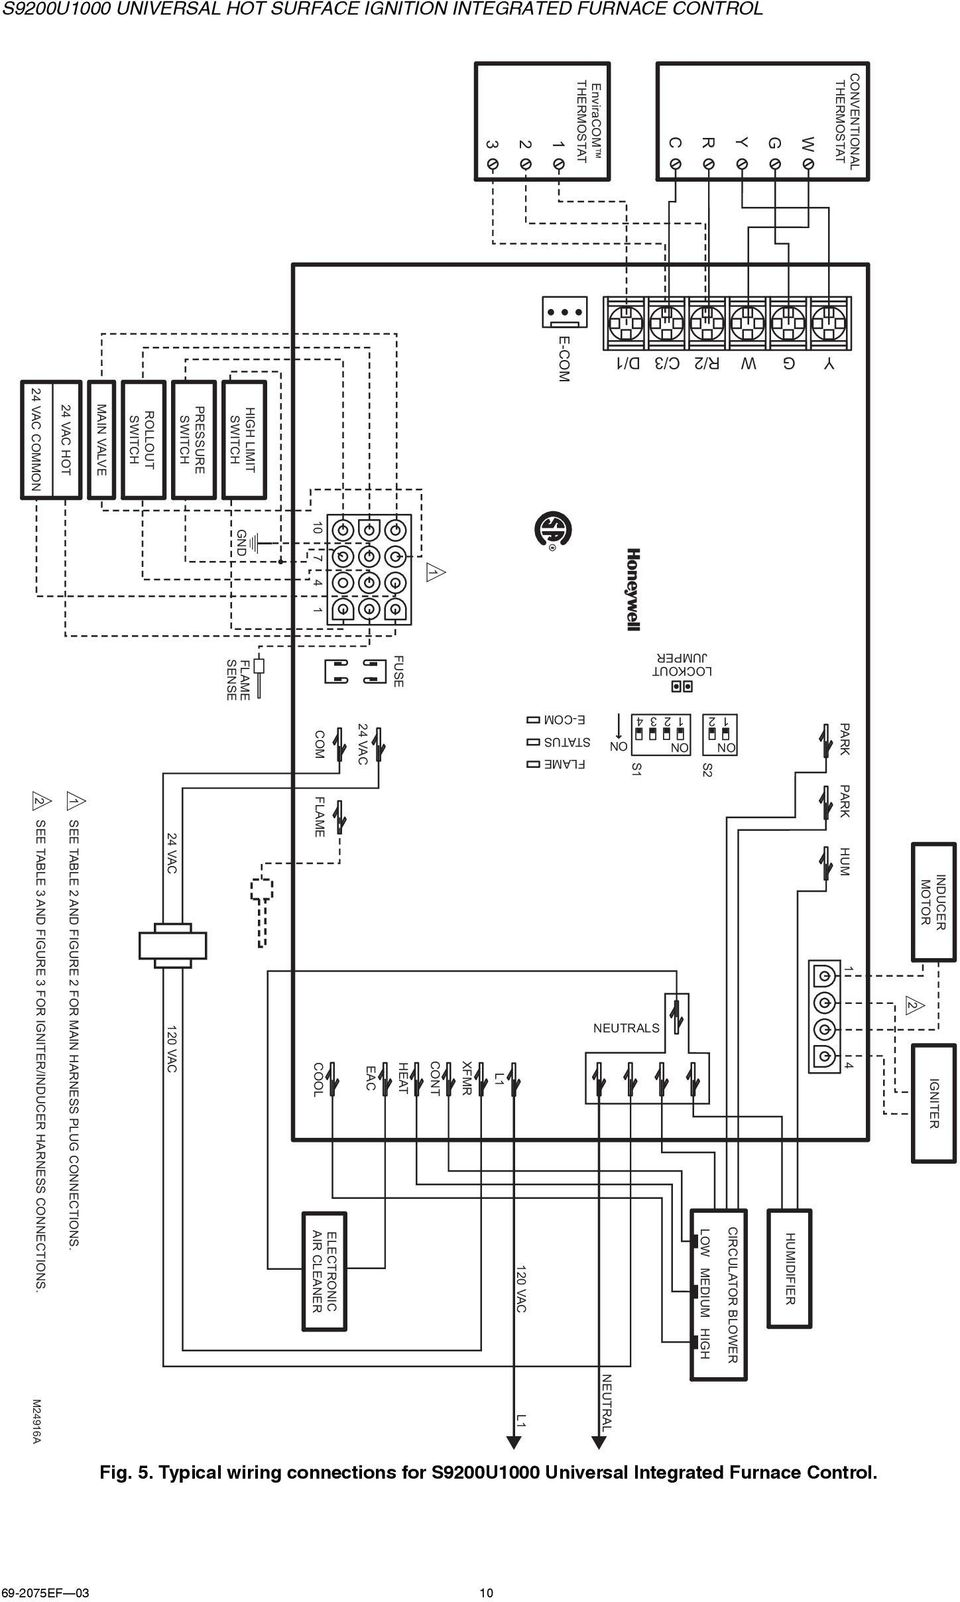 s9200u1000 universal hot surface ignition integrated